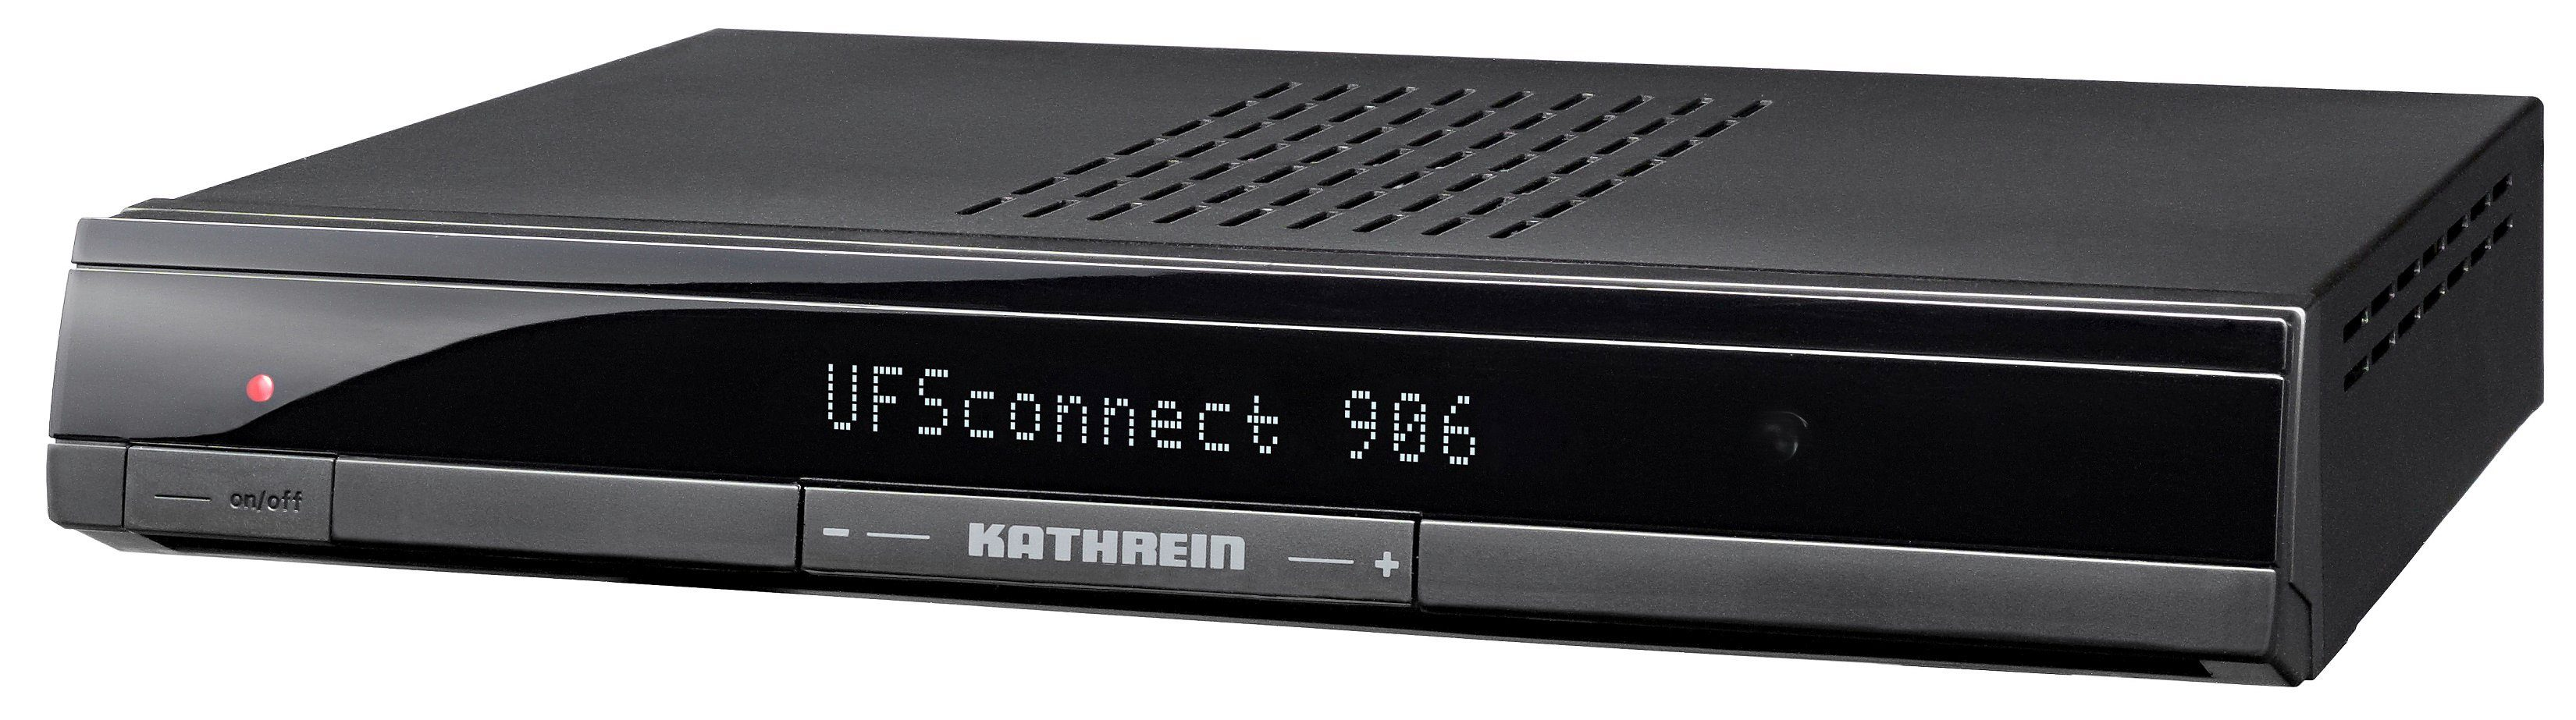 Kathrein Smart-TV-Receiver HDTV »UFSconnect 906sw«